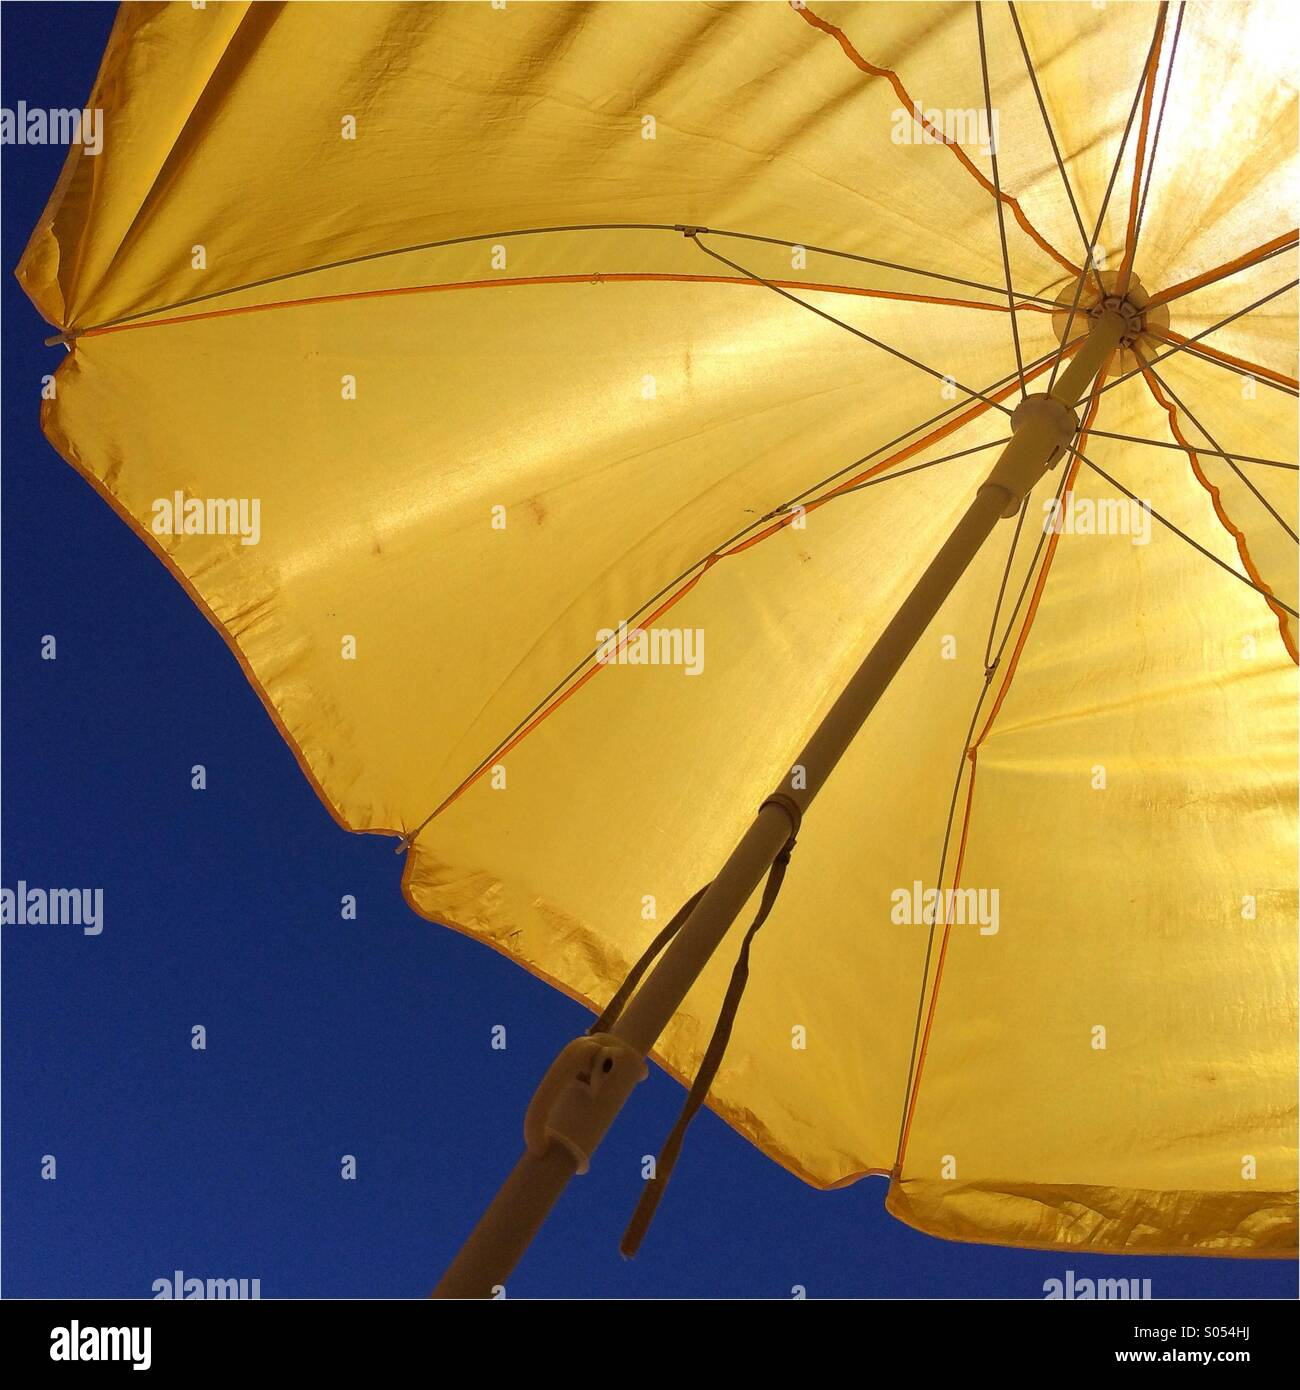 Yellow beach parasol against blue sky - Stock Image